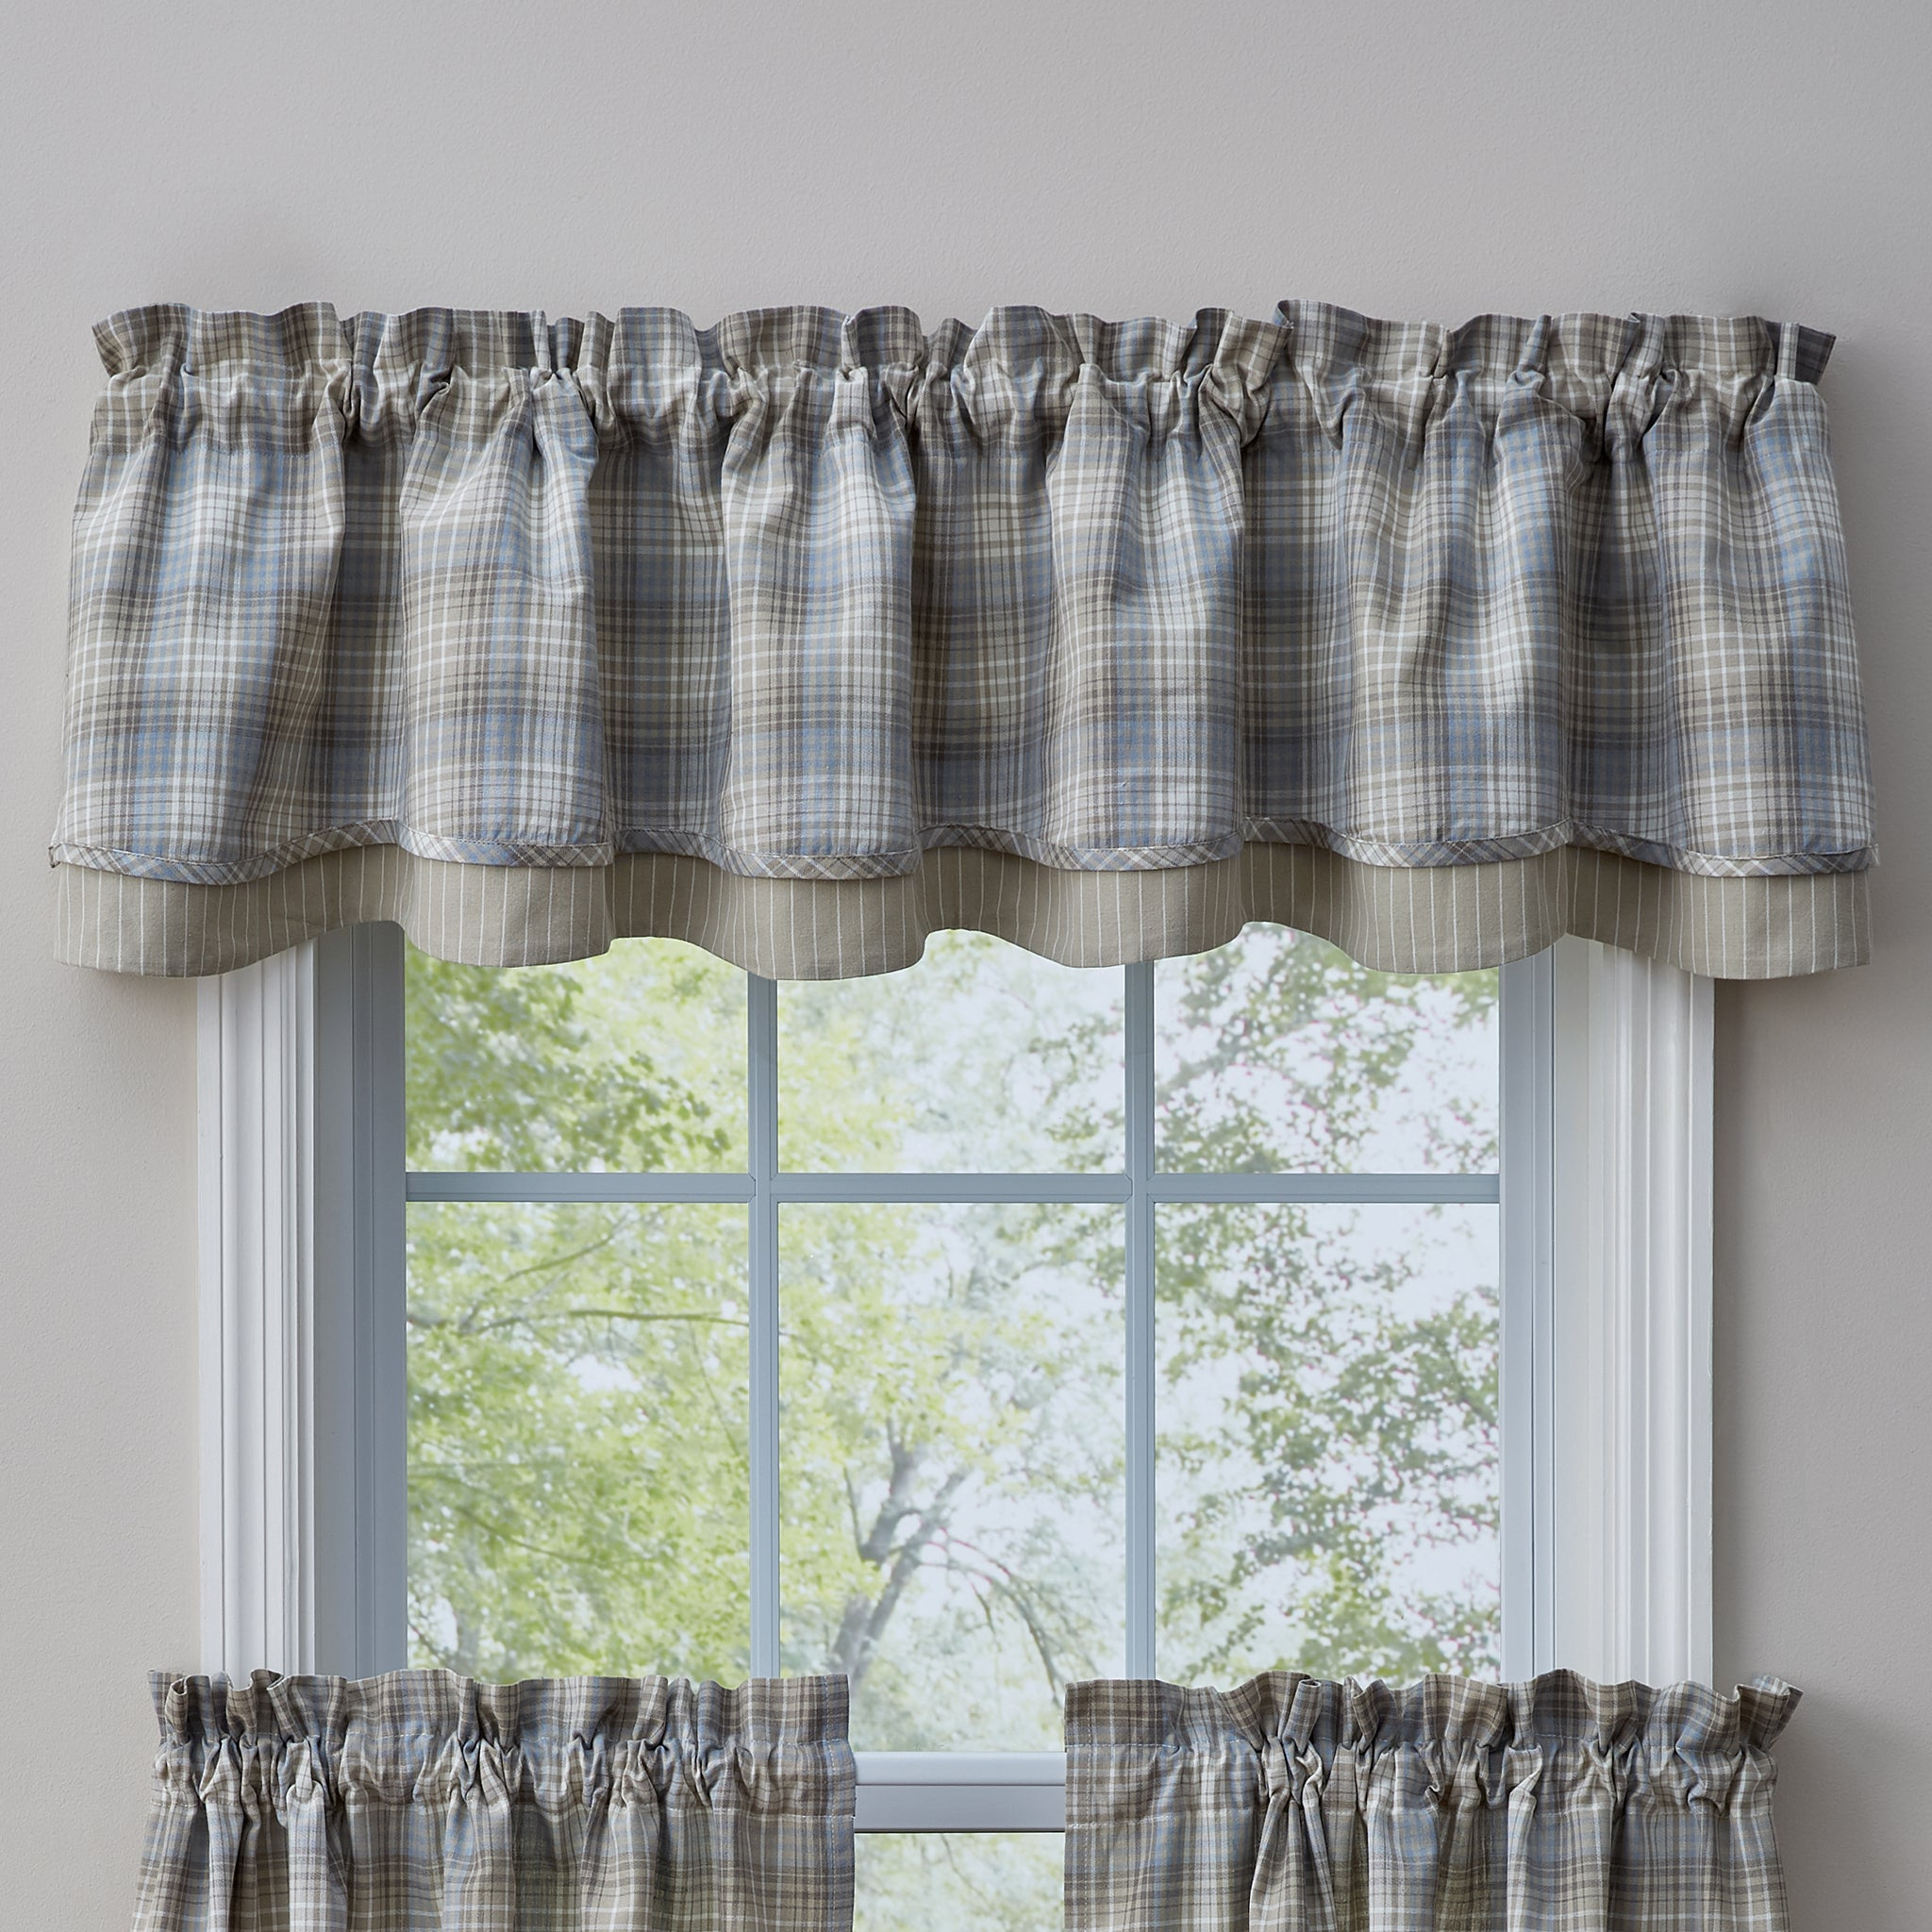 valance in white wallpaper pattern lamp also of wooden room back window interior curtains size hanging sheer bay living small frame glass and decoration tiecord beautiful with wood floral black full triple on